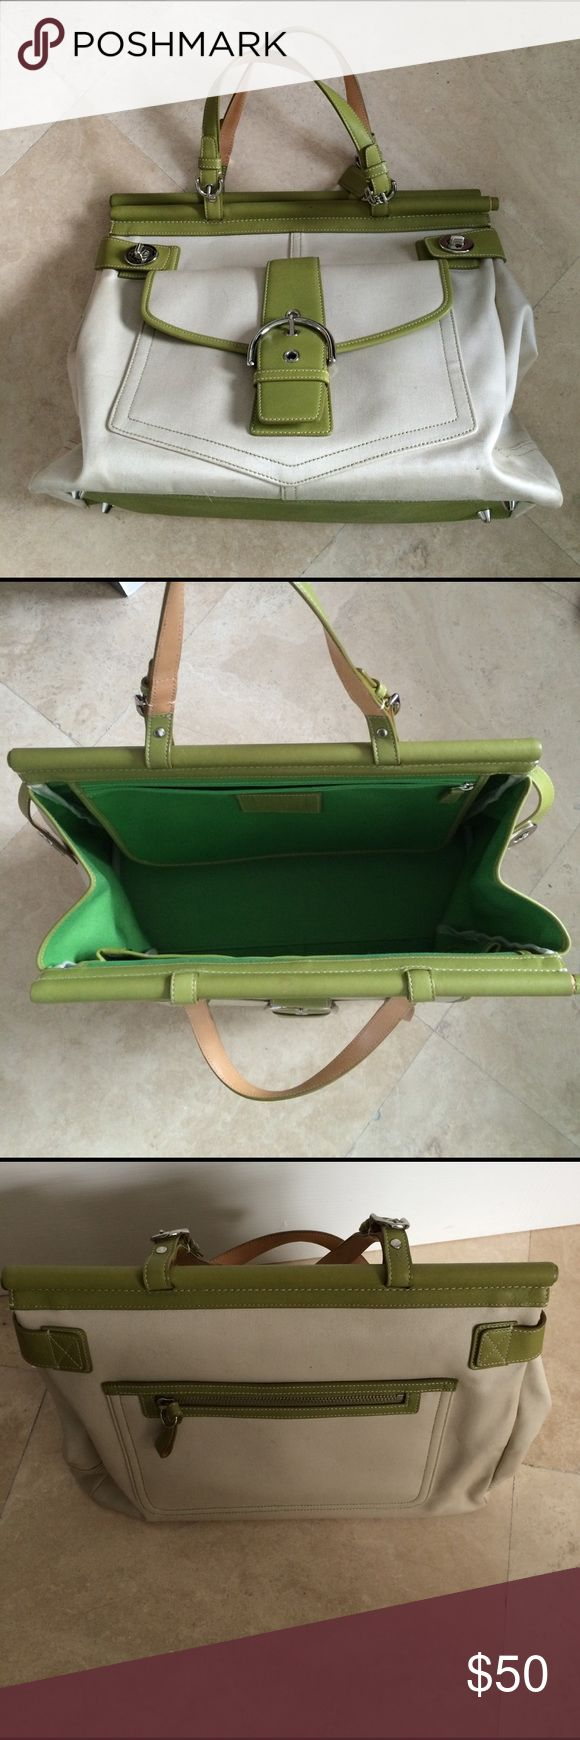 Coach Khaki Canvas and Green Leather Handbag This is a handle carry bag. It is quite large, you can put school notebooks and at least one textbook inside. Used once. Coach Bags Totes